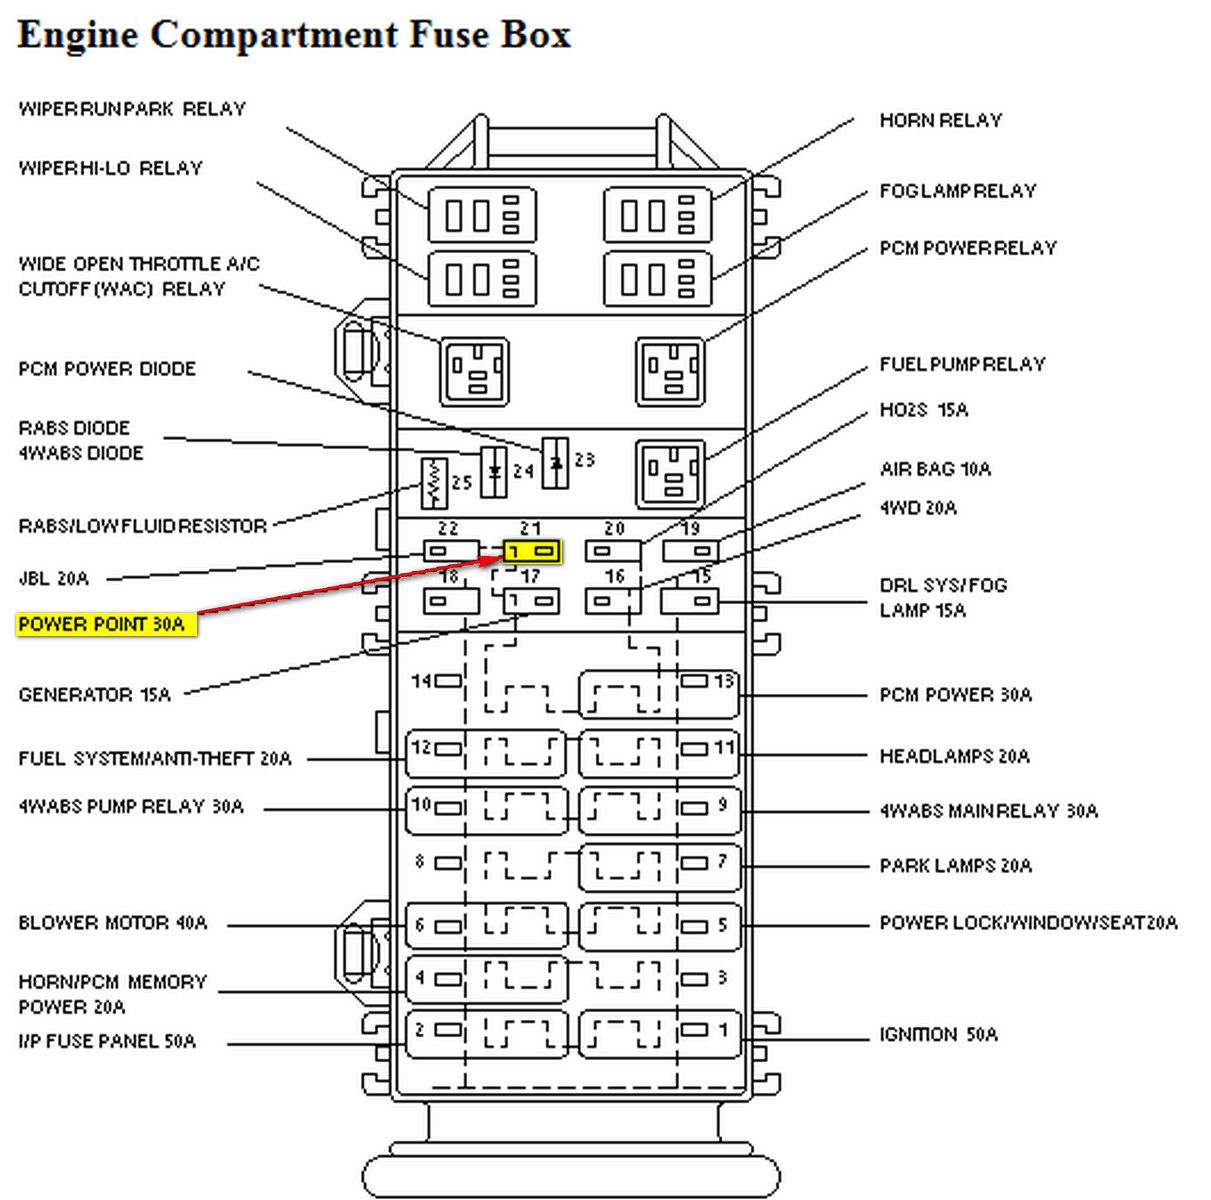 2006 ford ranger fuse box diagram wiring diagram origin 1998 ford ranger fuse diagram 1997 ford [ 1211 x 1200 Pixel ]